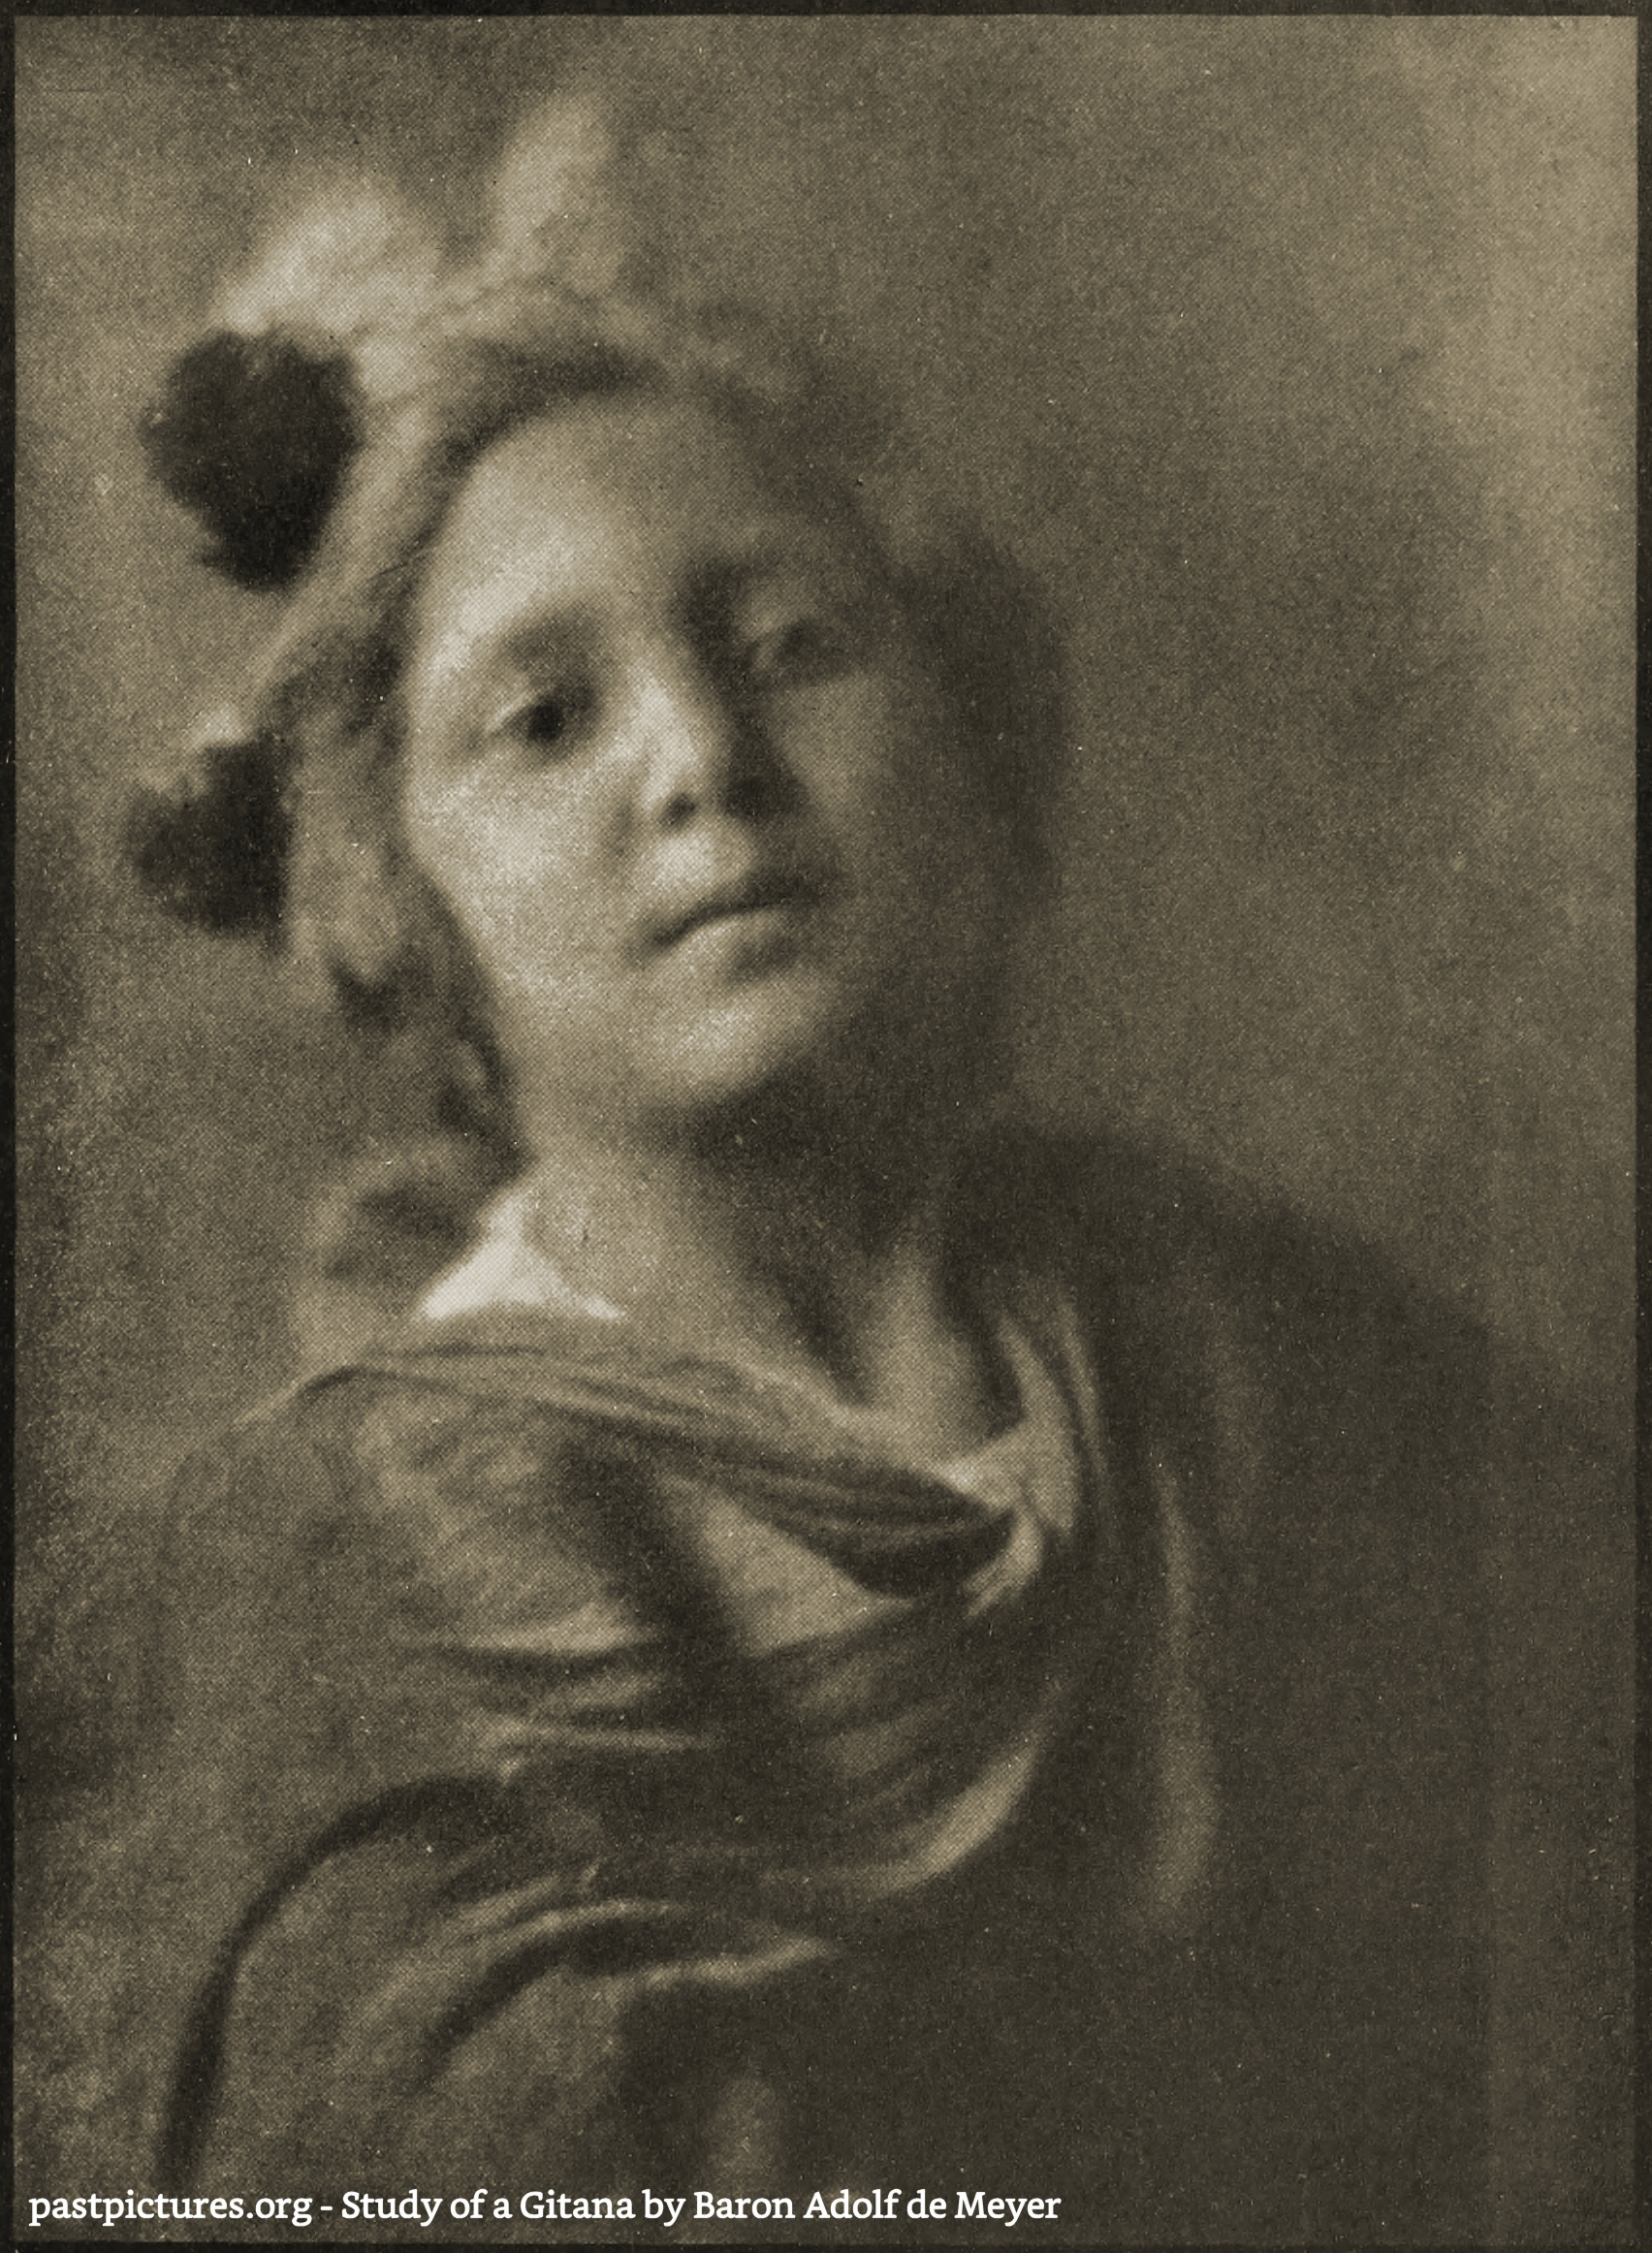 Study of a Gitana by Baron Adolf de Meyer about 1908